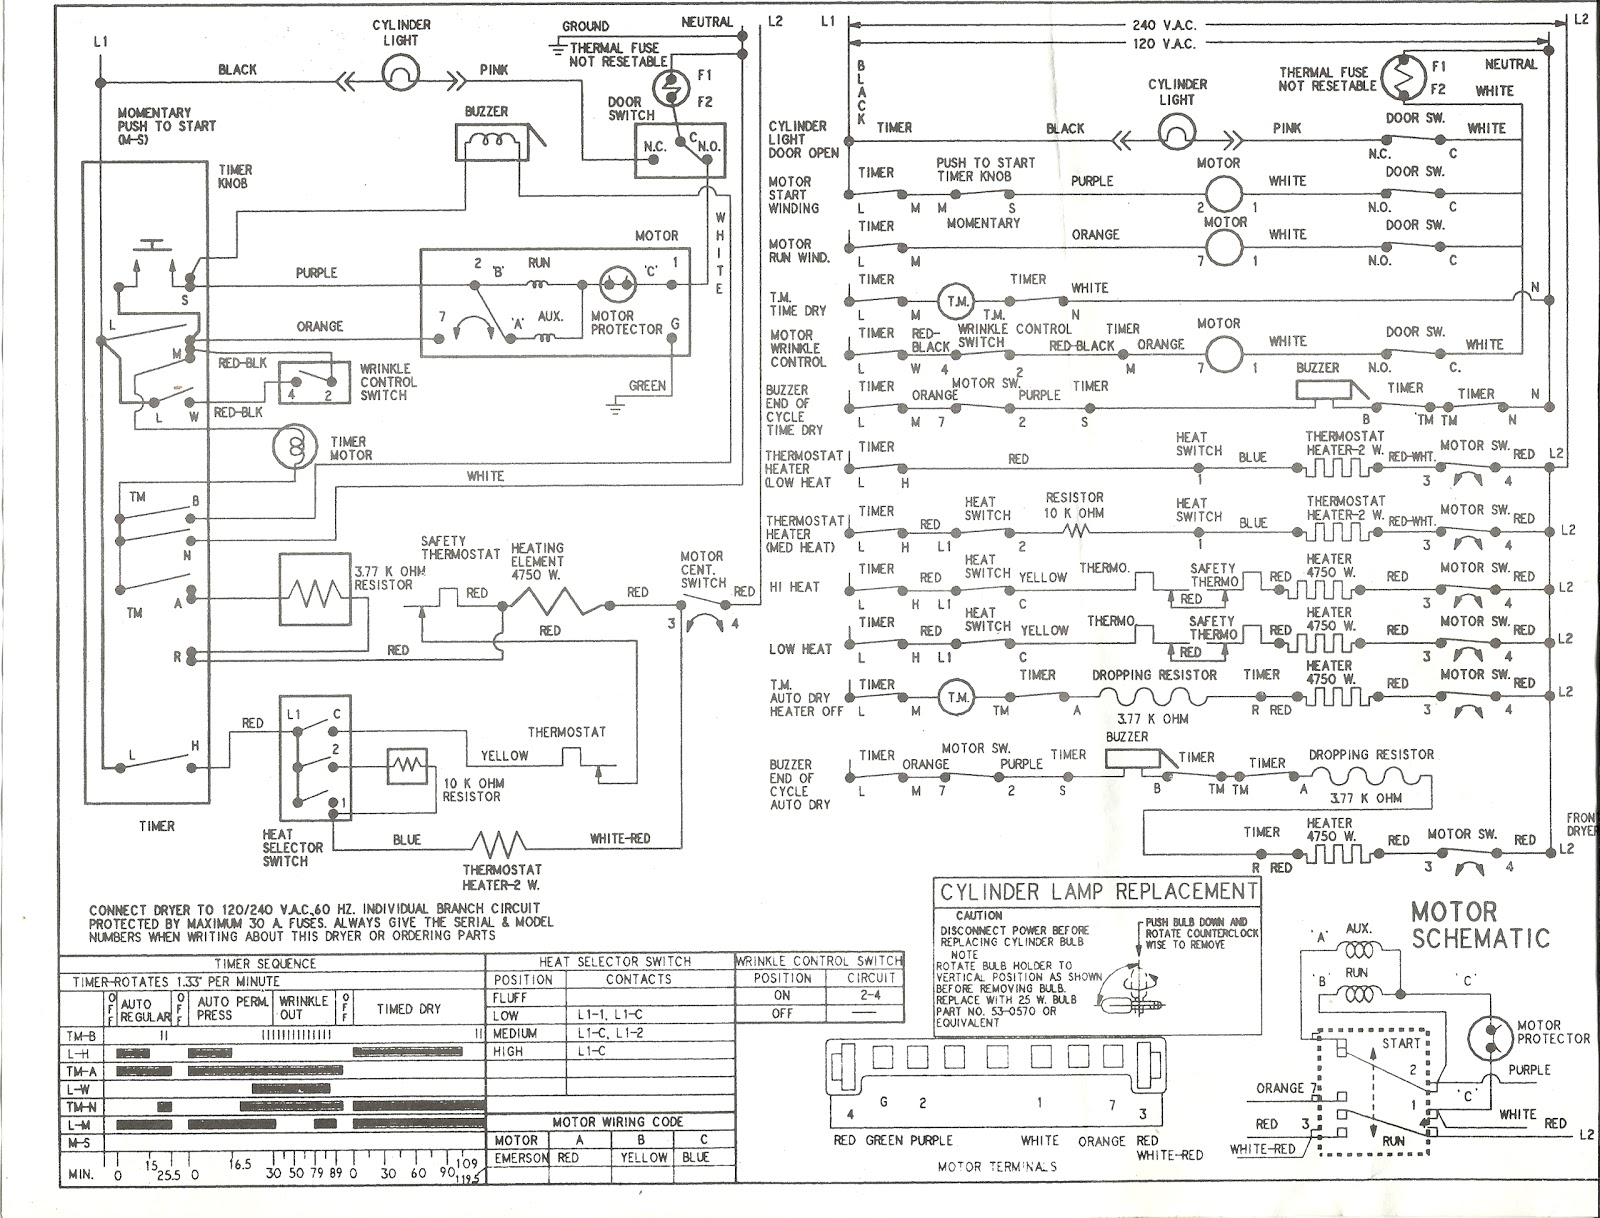 scan0001 wiring diagram dryer kenmore dryer heating element wiring diagram  at webbmarketing.co